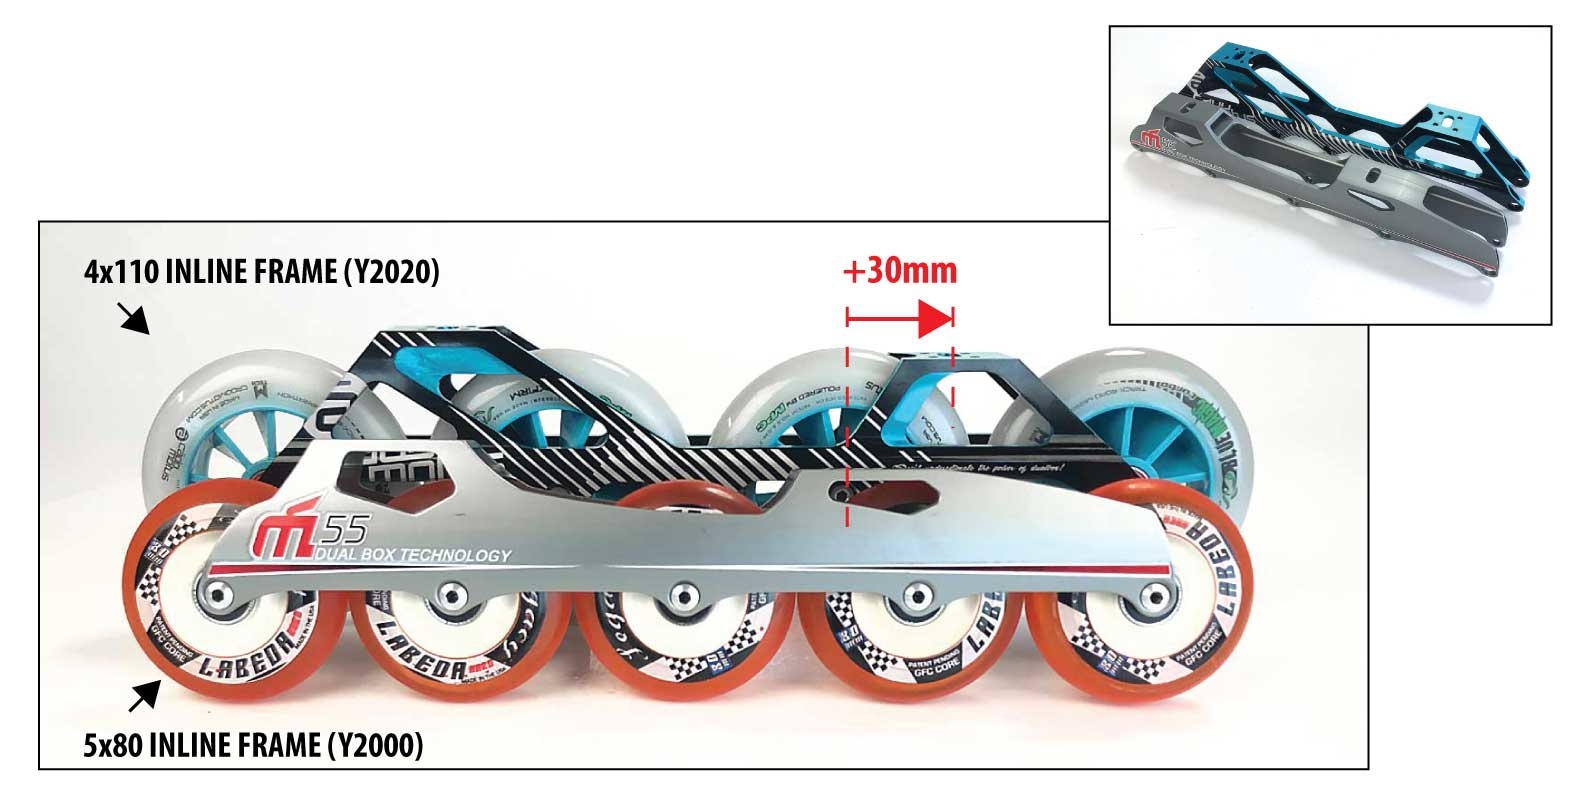 Development of inline skates from 80 to 110mm